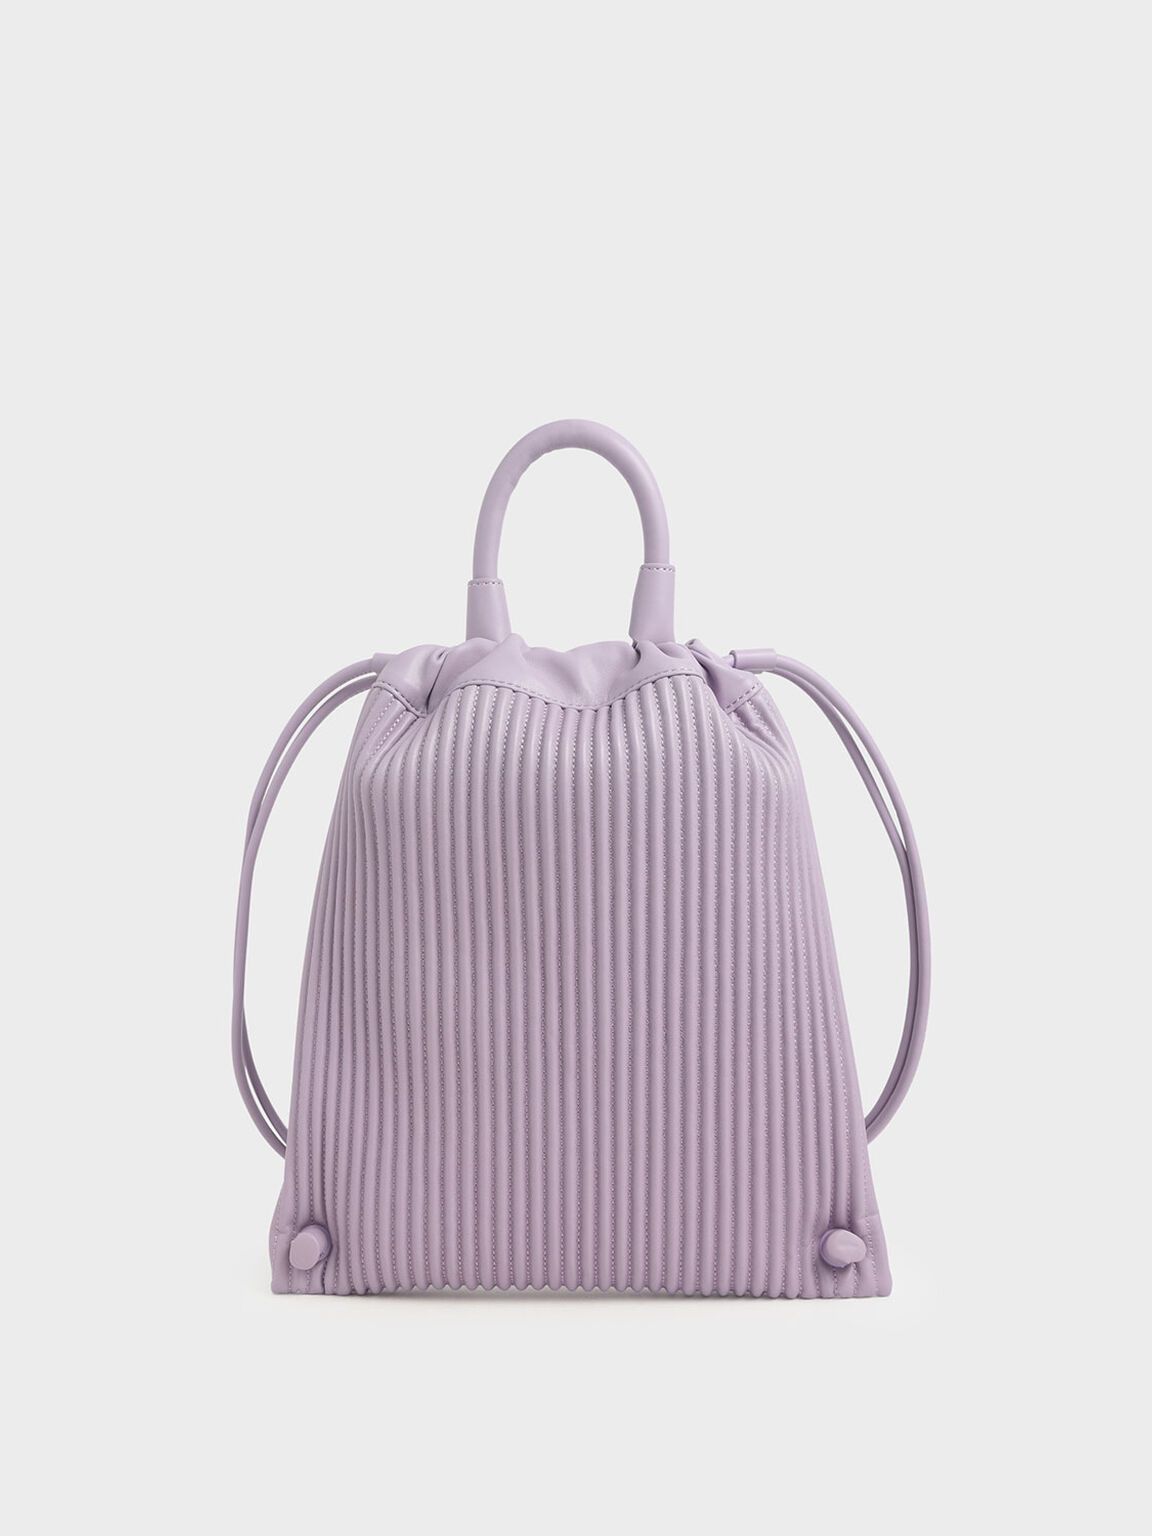 Textured Drawstring Backpack, Lilac, hi-res